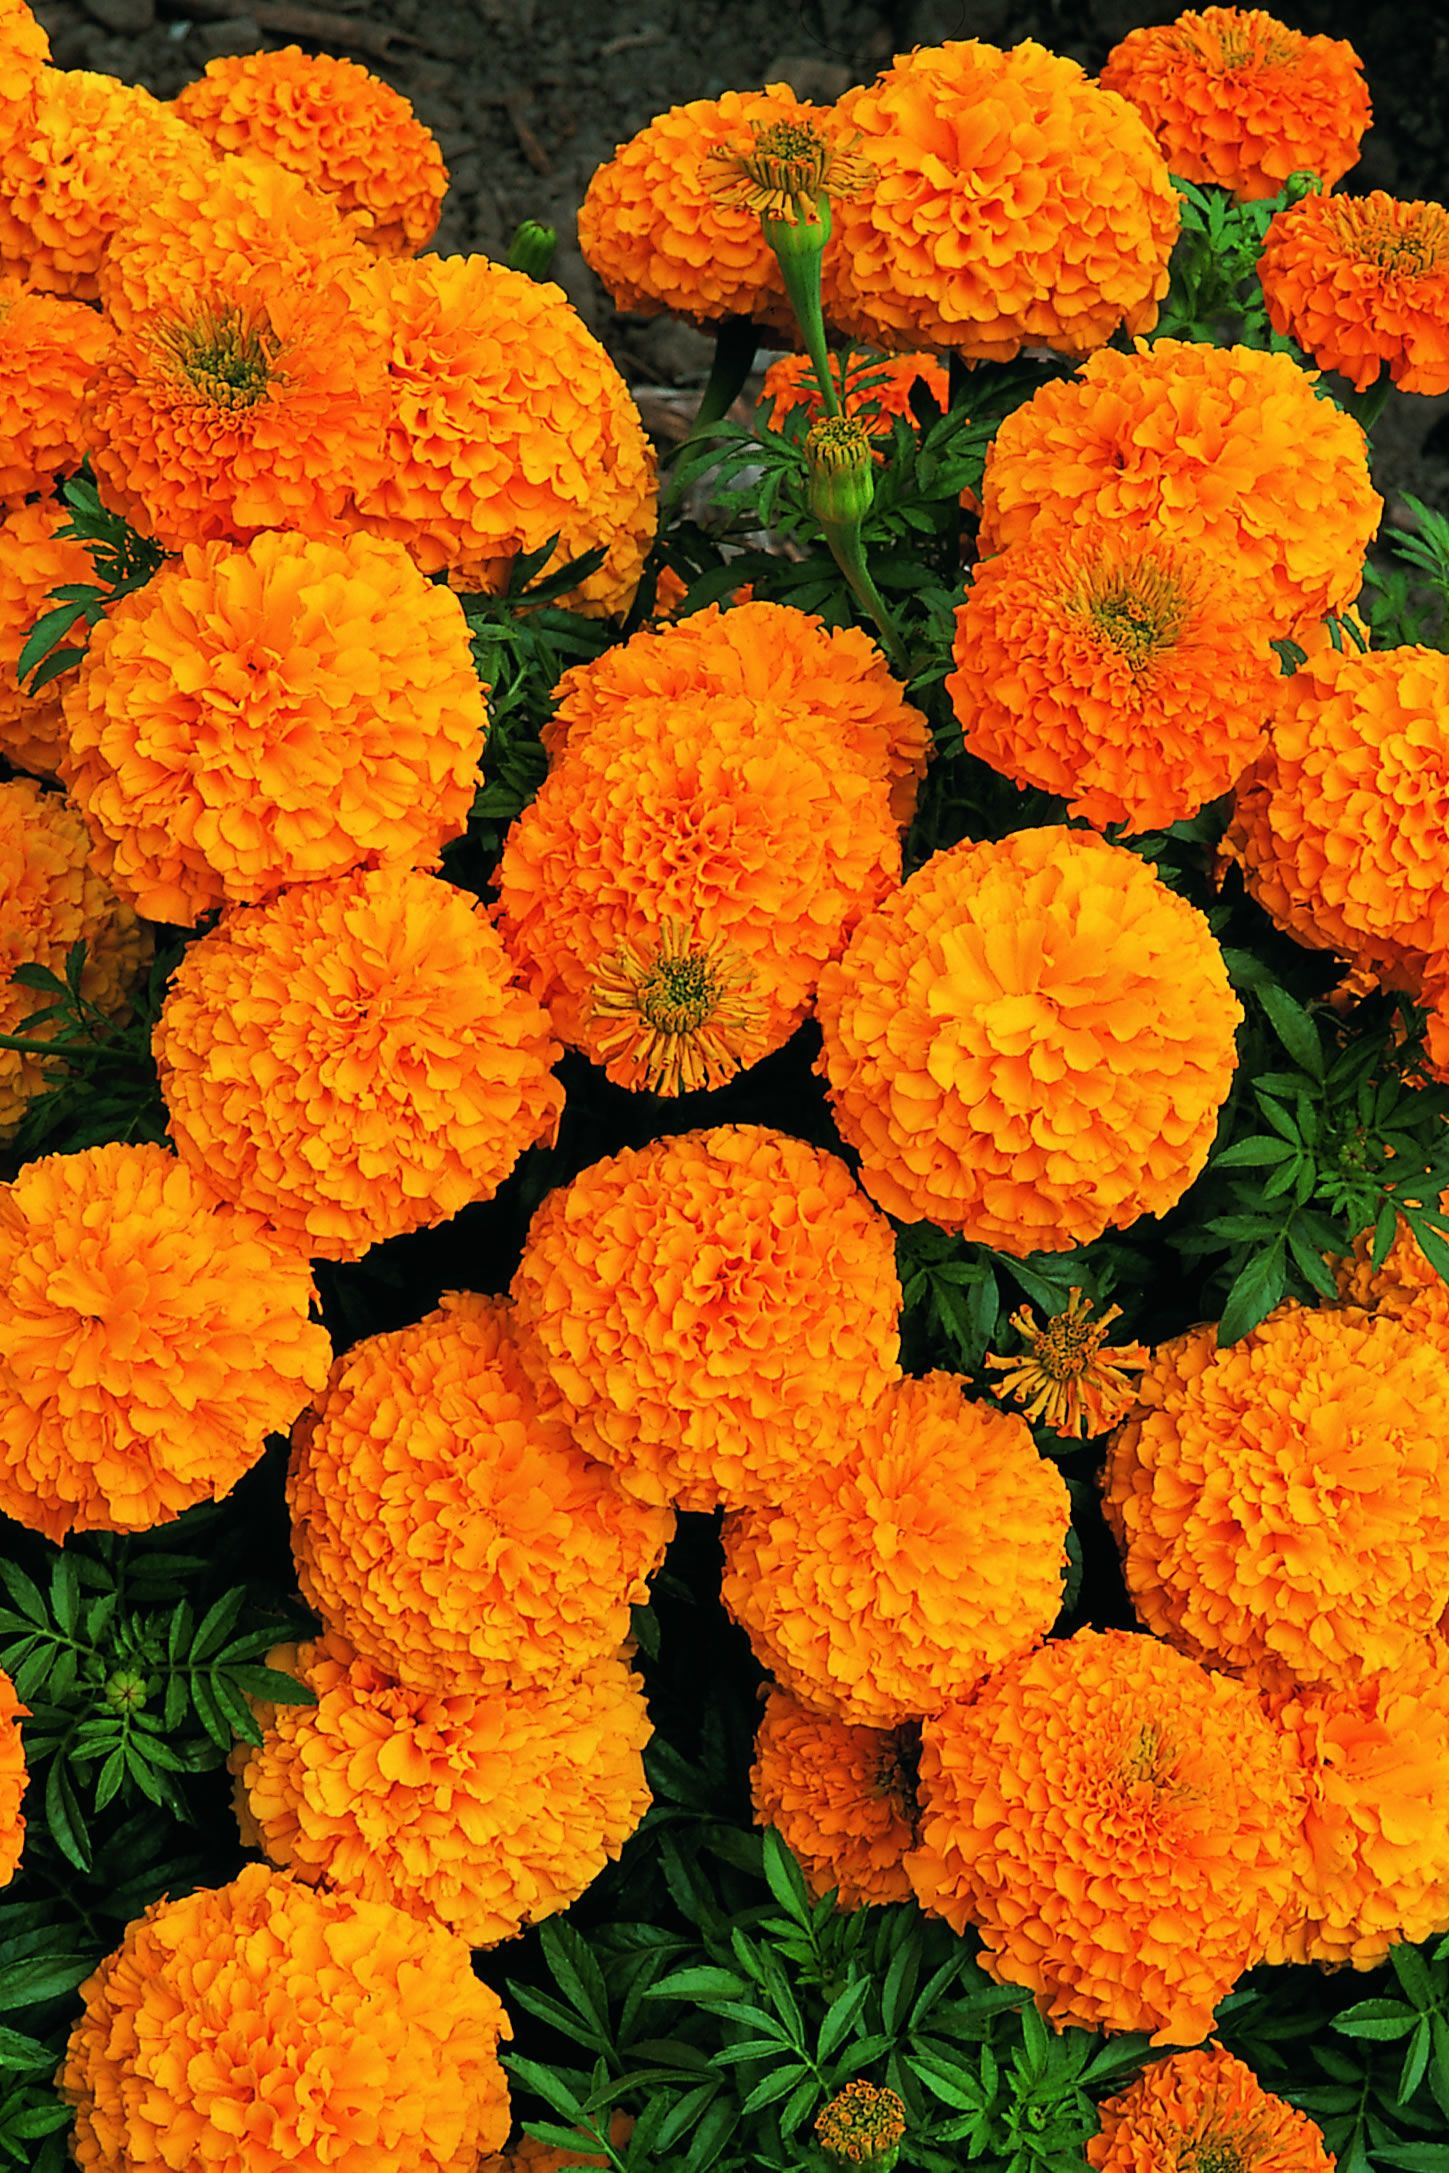 marigolds and symbolism Marigolds are symbolic of life renewal and birth the marigolds are planted by claudia and frieda in the hopes pecola's baby will have a safe birth unfortunately, the flowers never bloom foreshadowing the baby's death.